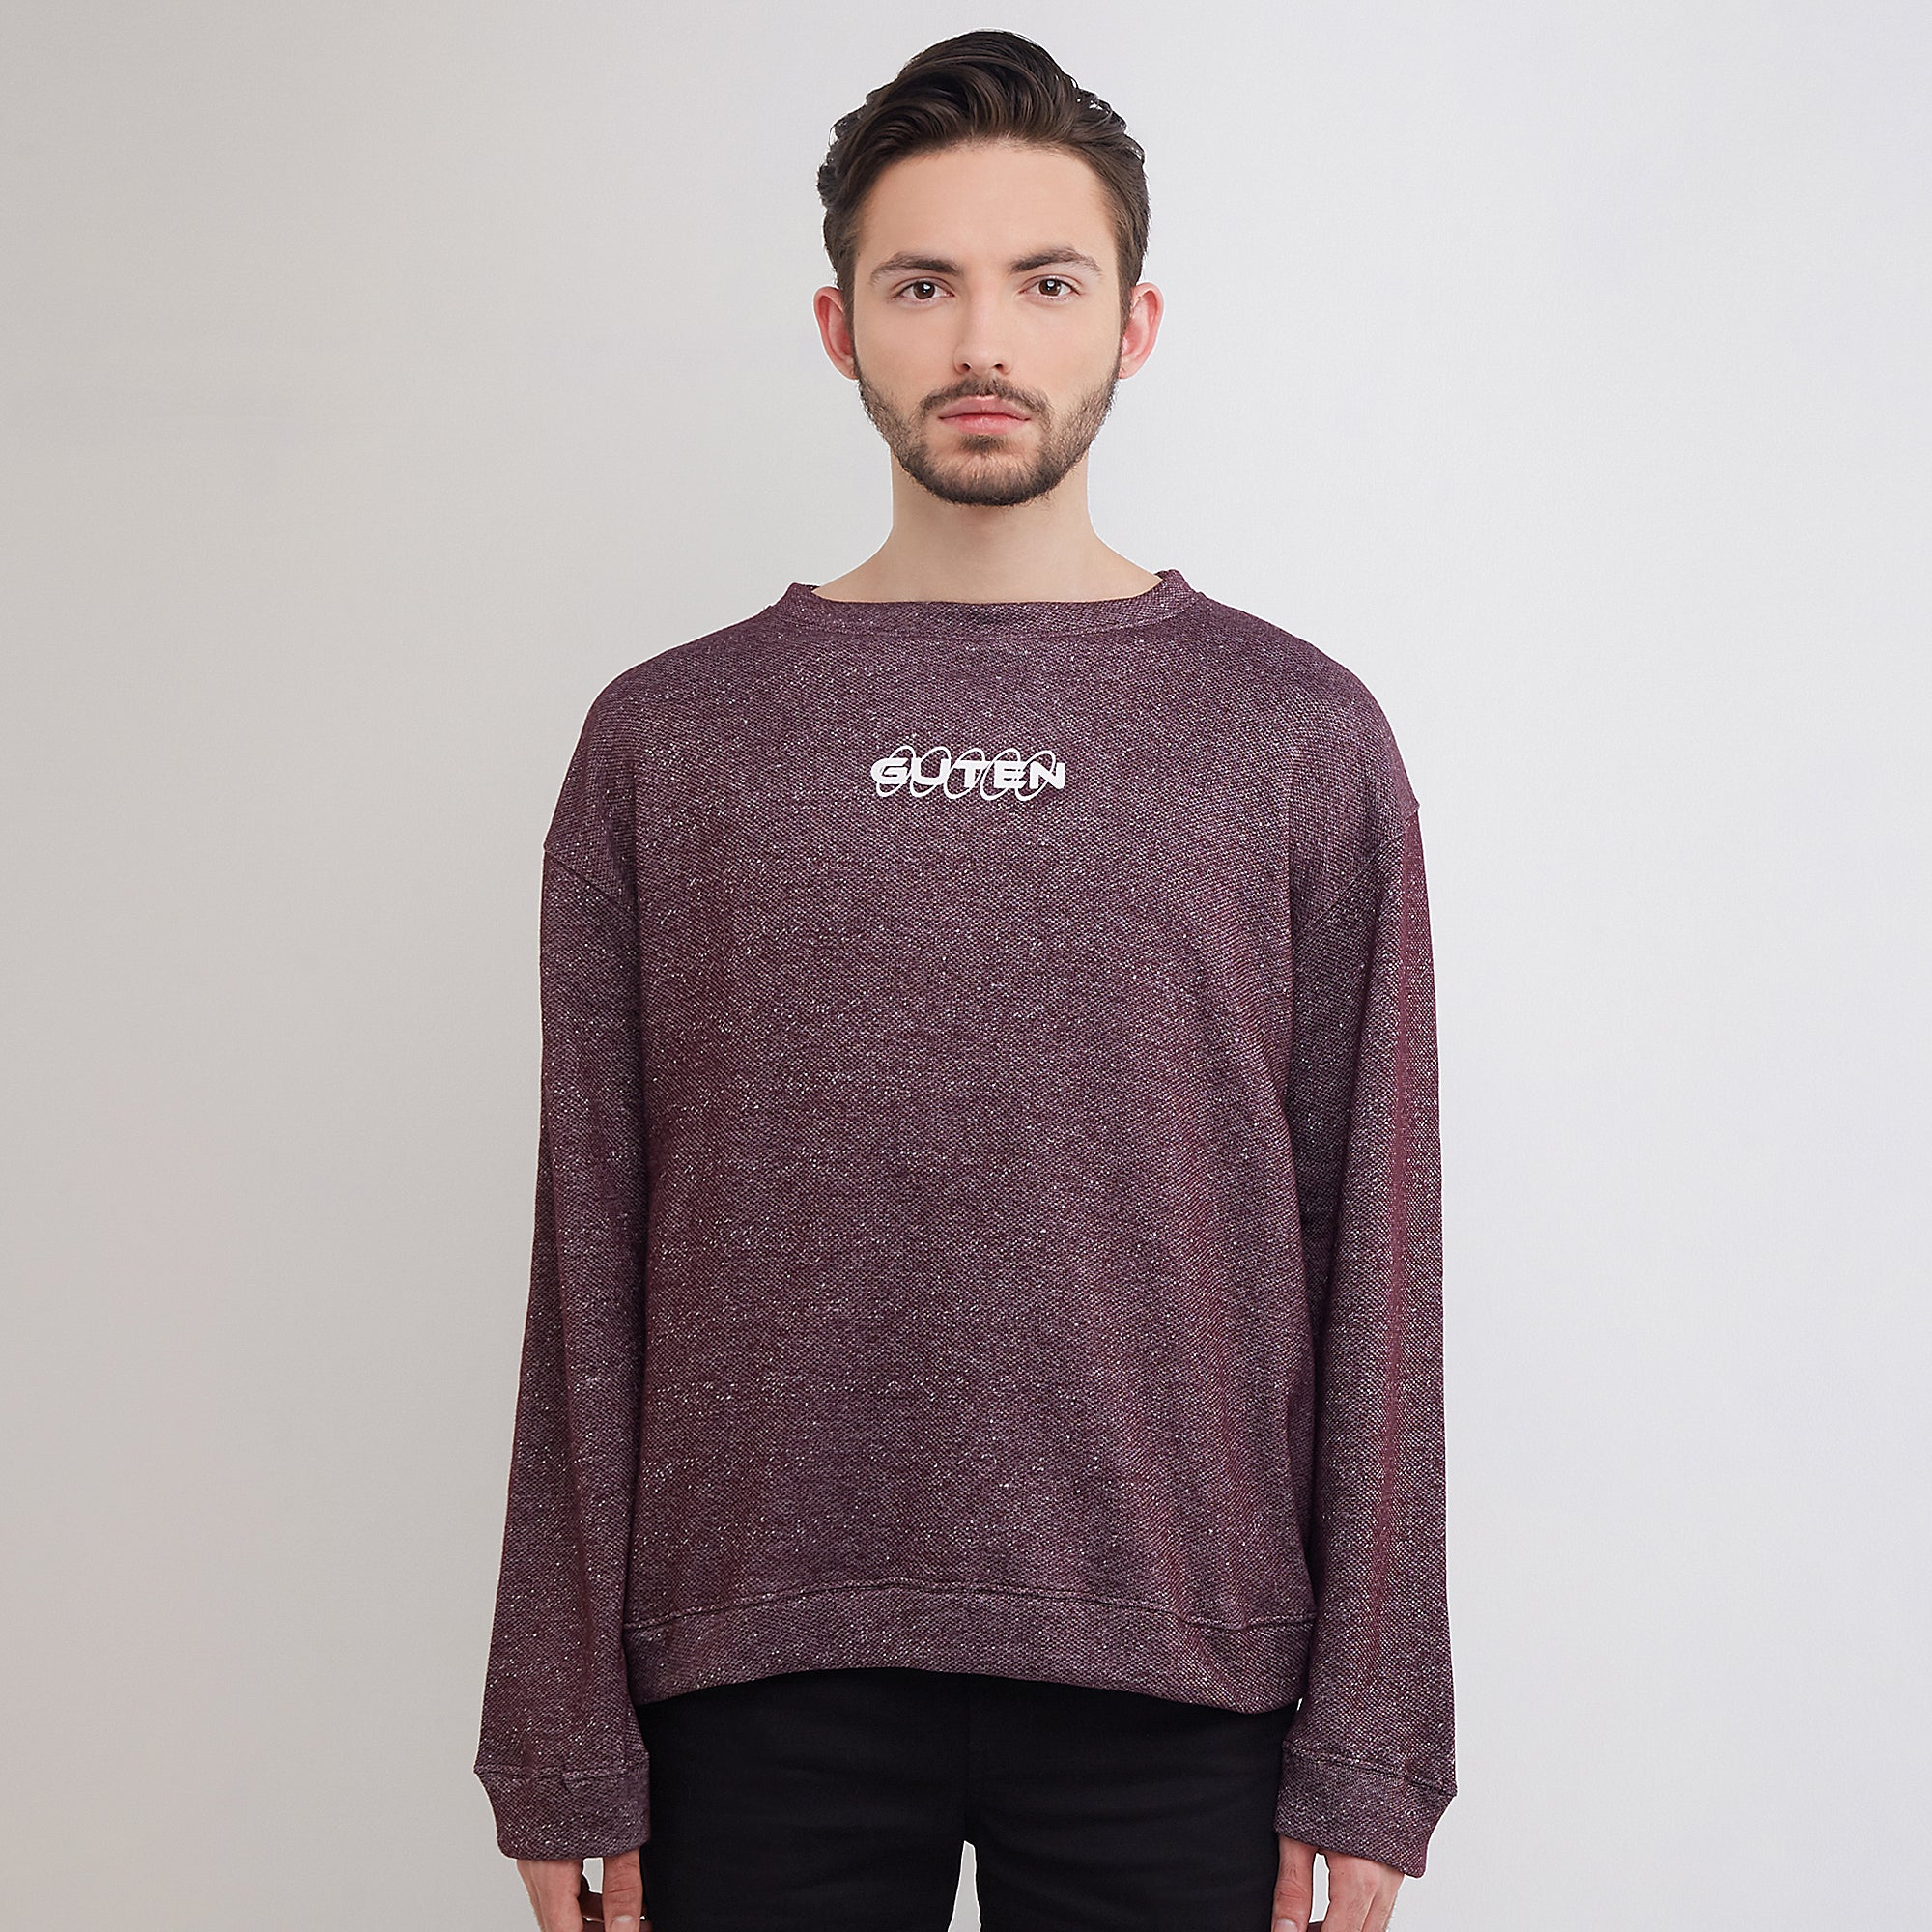 Guteninc Futuretype Crewneck Two Tone Maroon